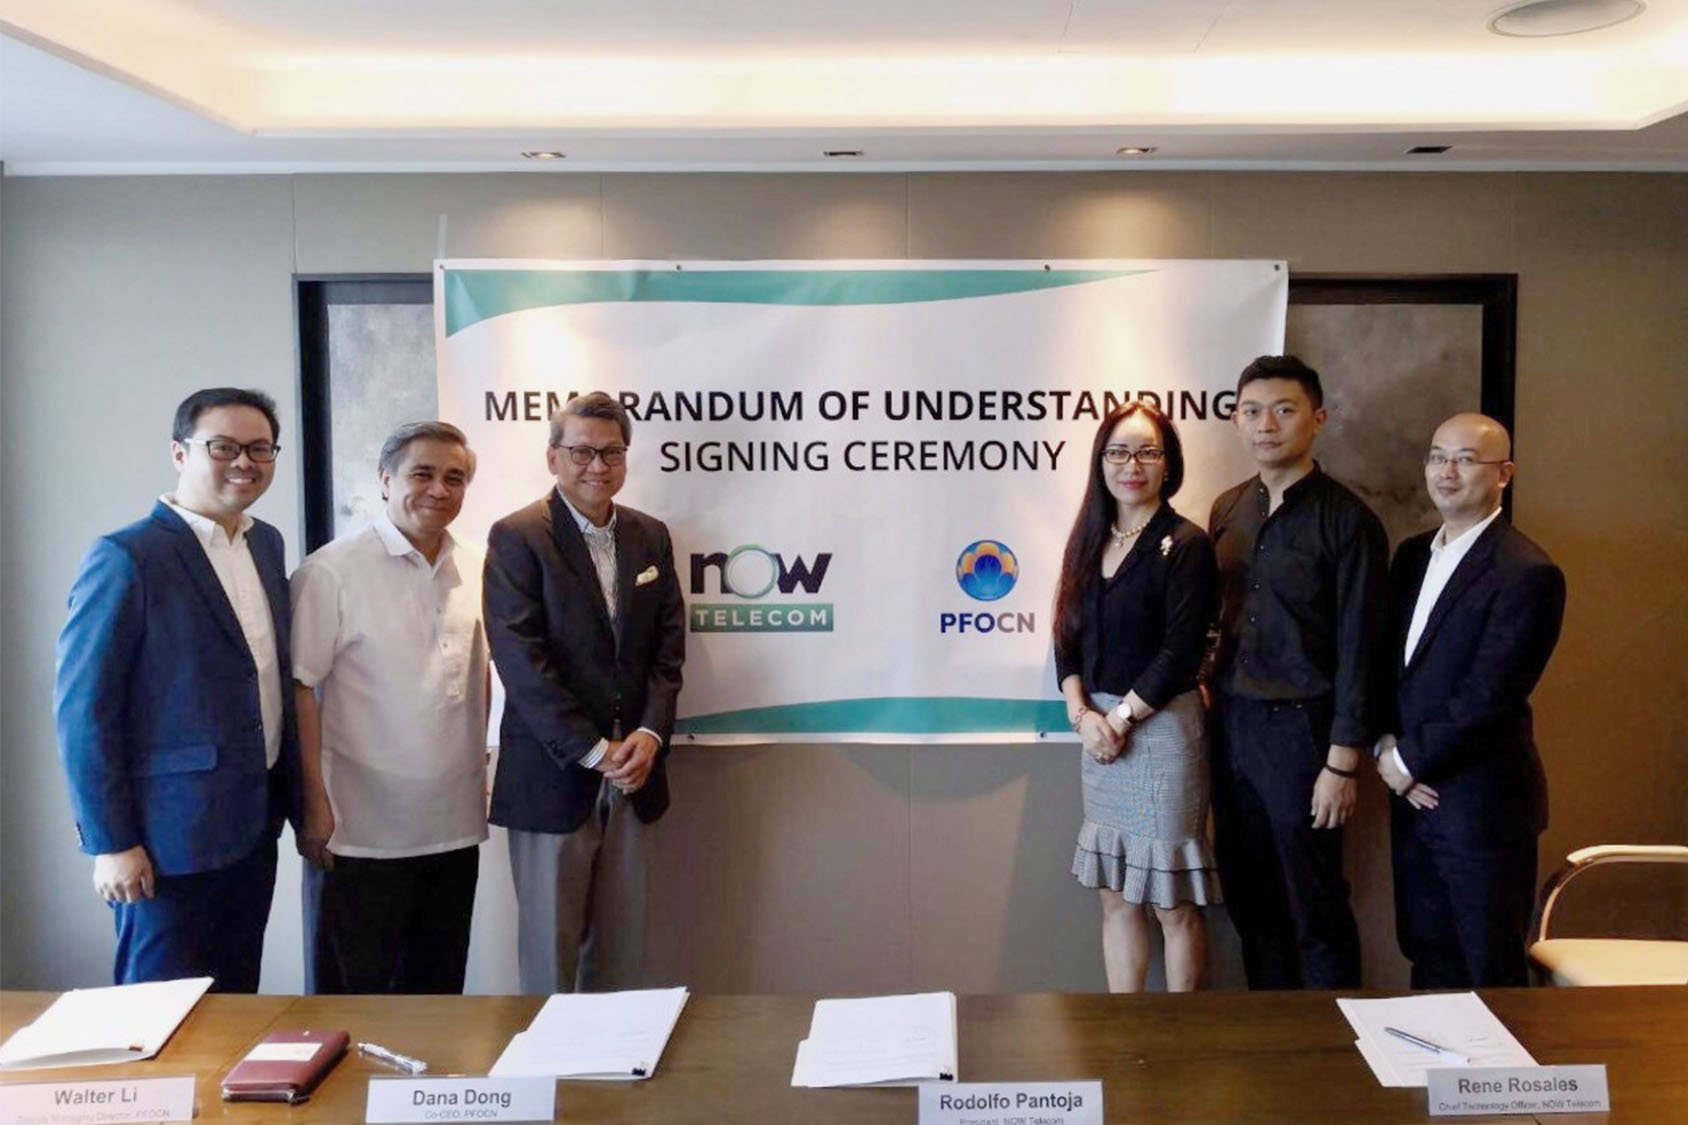 NOW Telecom executed a Memorandum of Understanding with